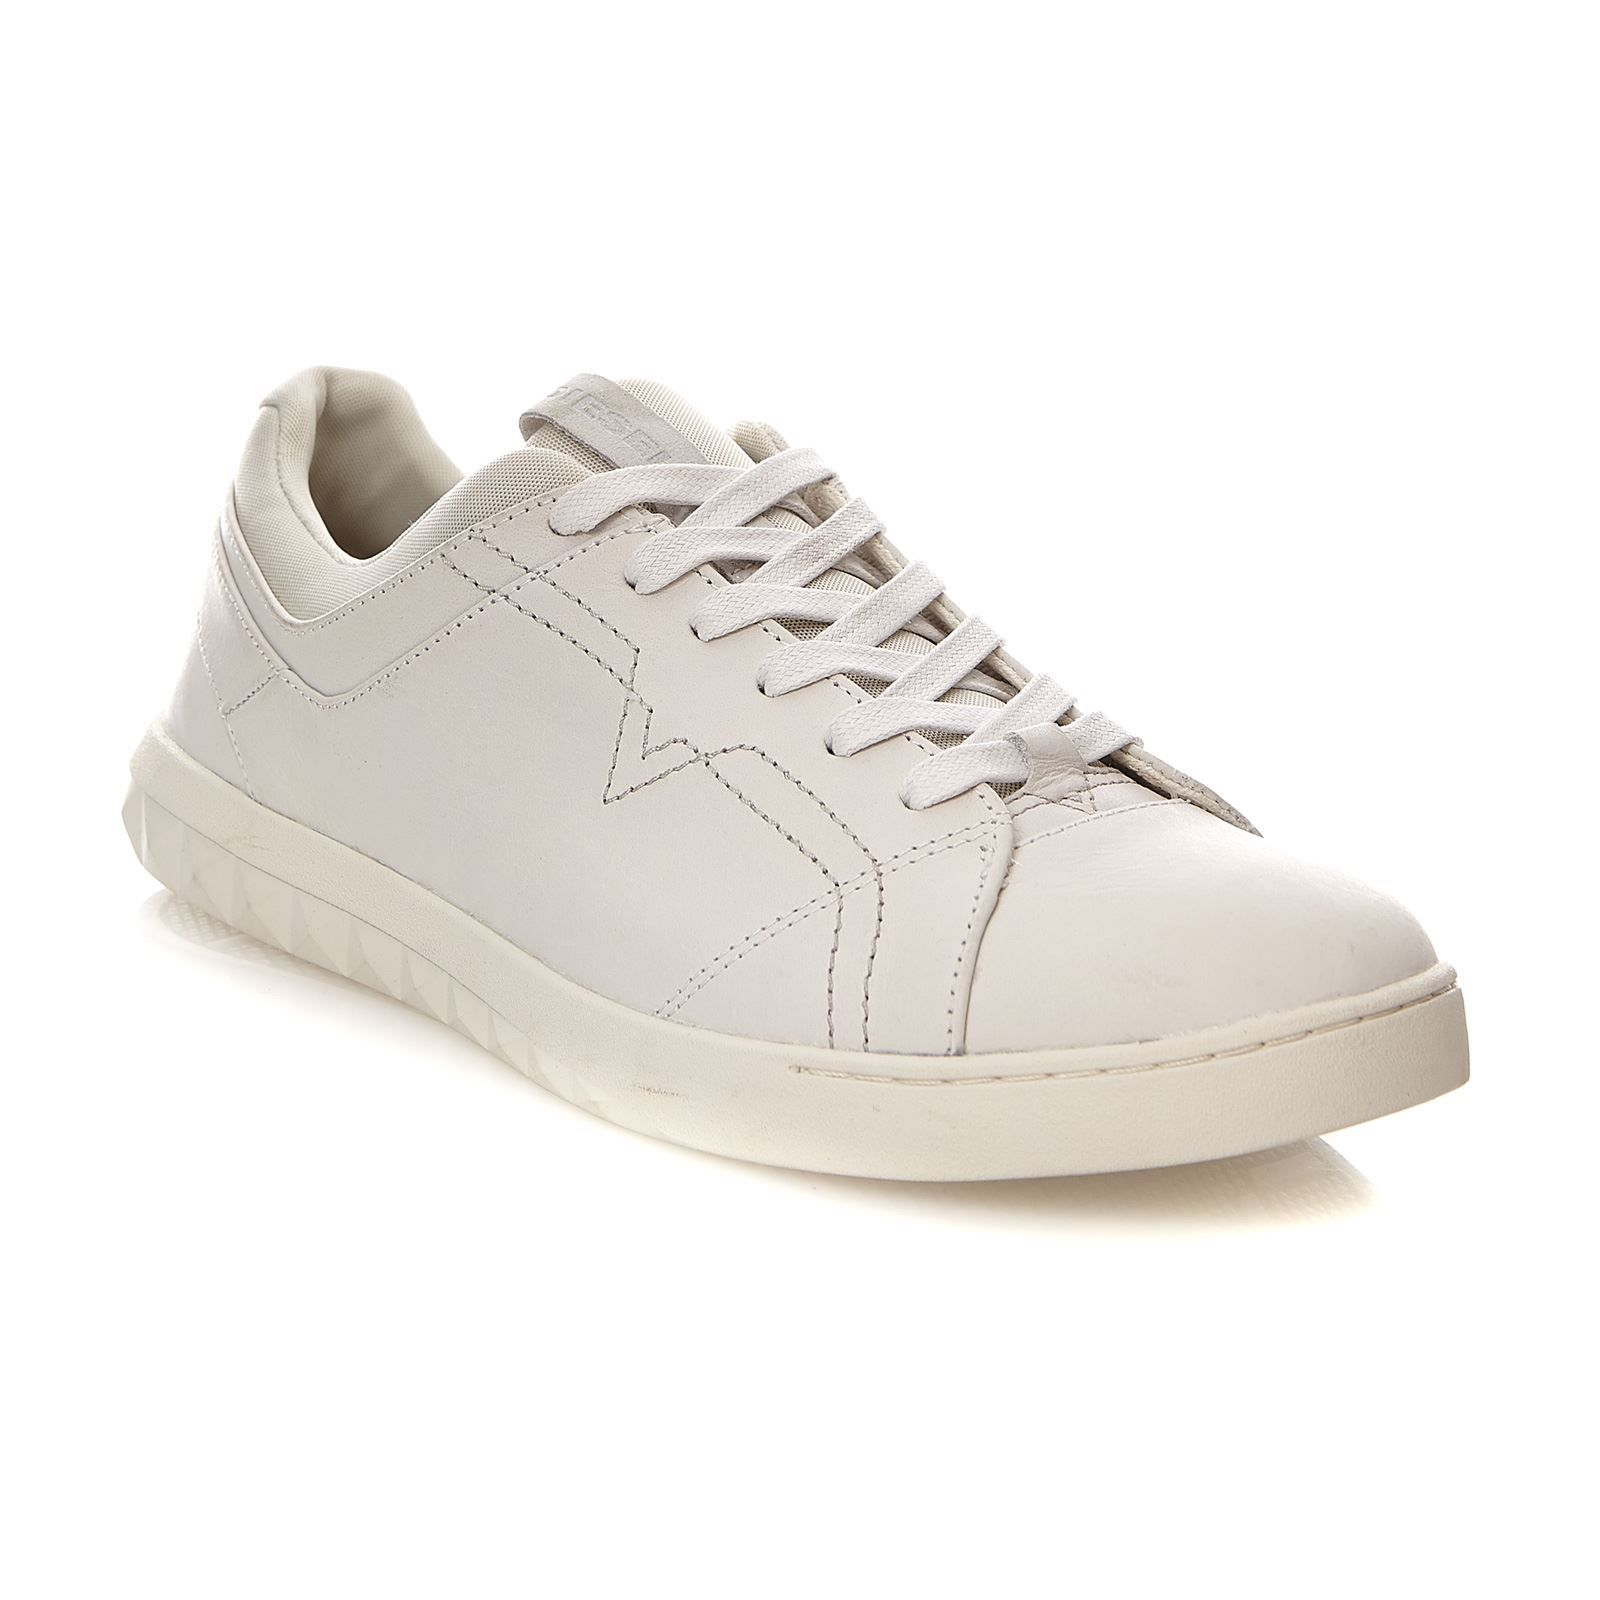 Diesel S-Studdzy lace - Sneakers - blanc